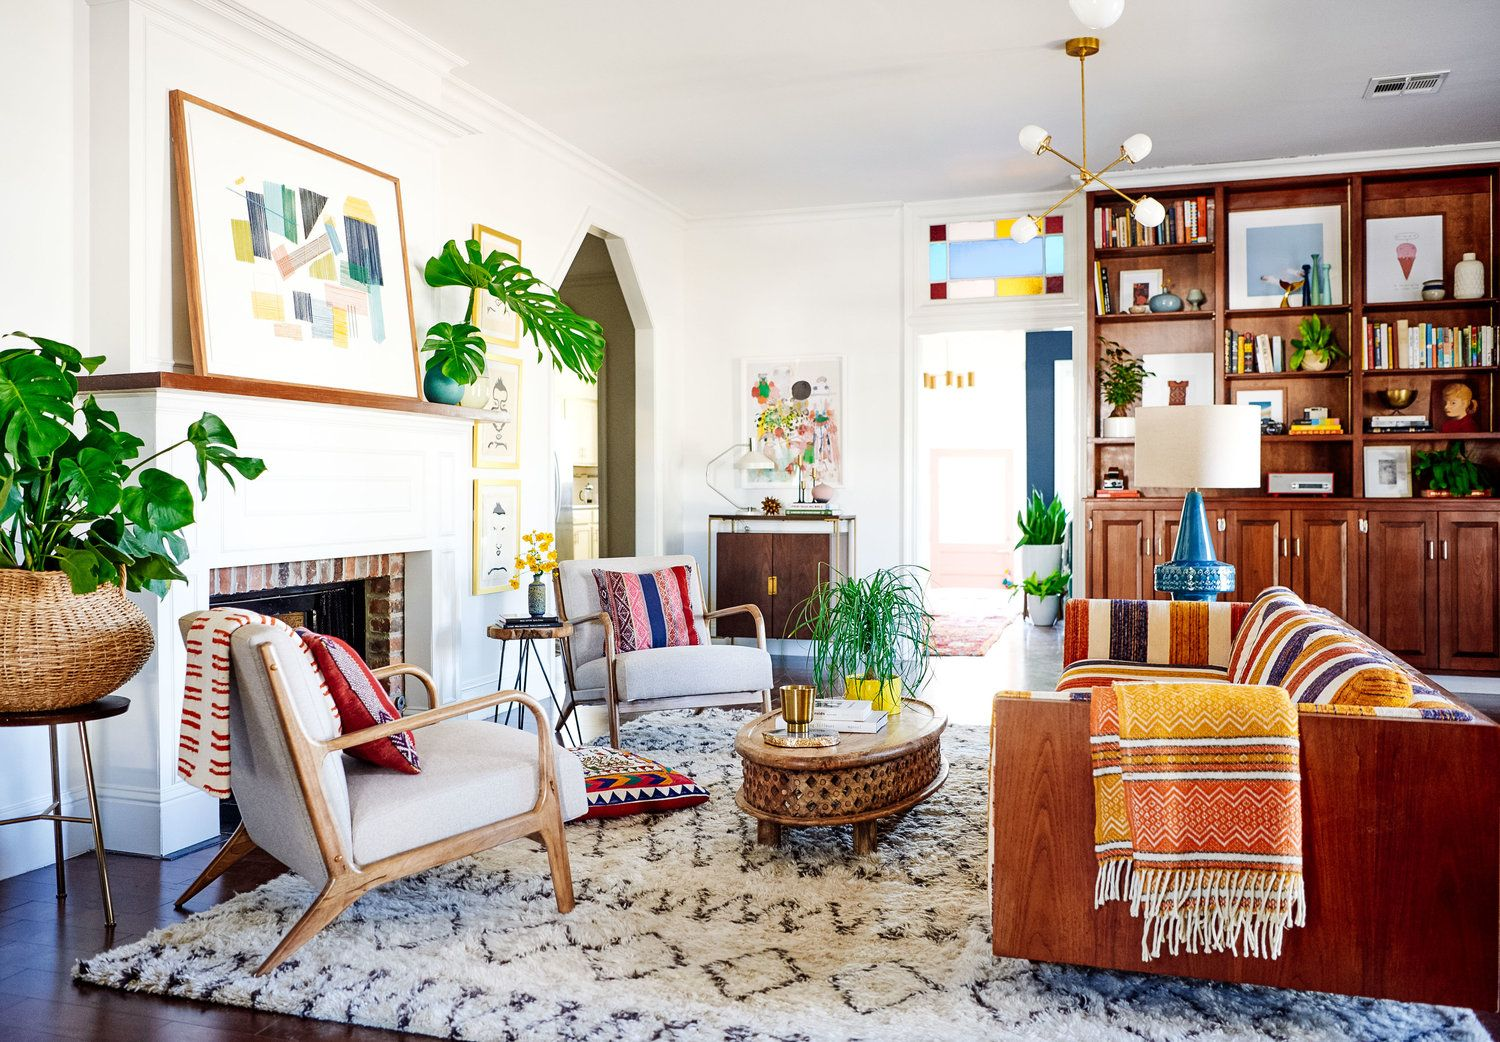 Our Crazy Colorful New Orleans Home Tour | Living spaces, Eclectic ...